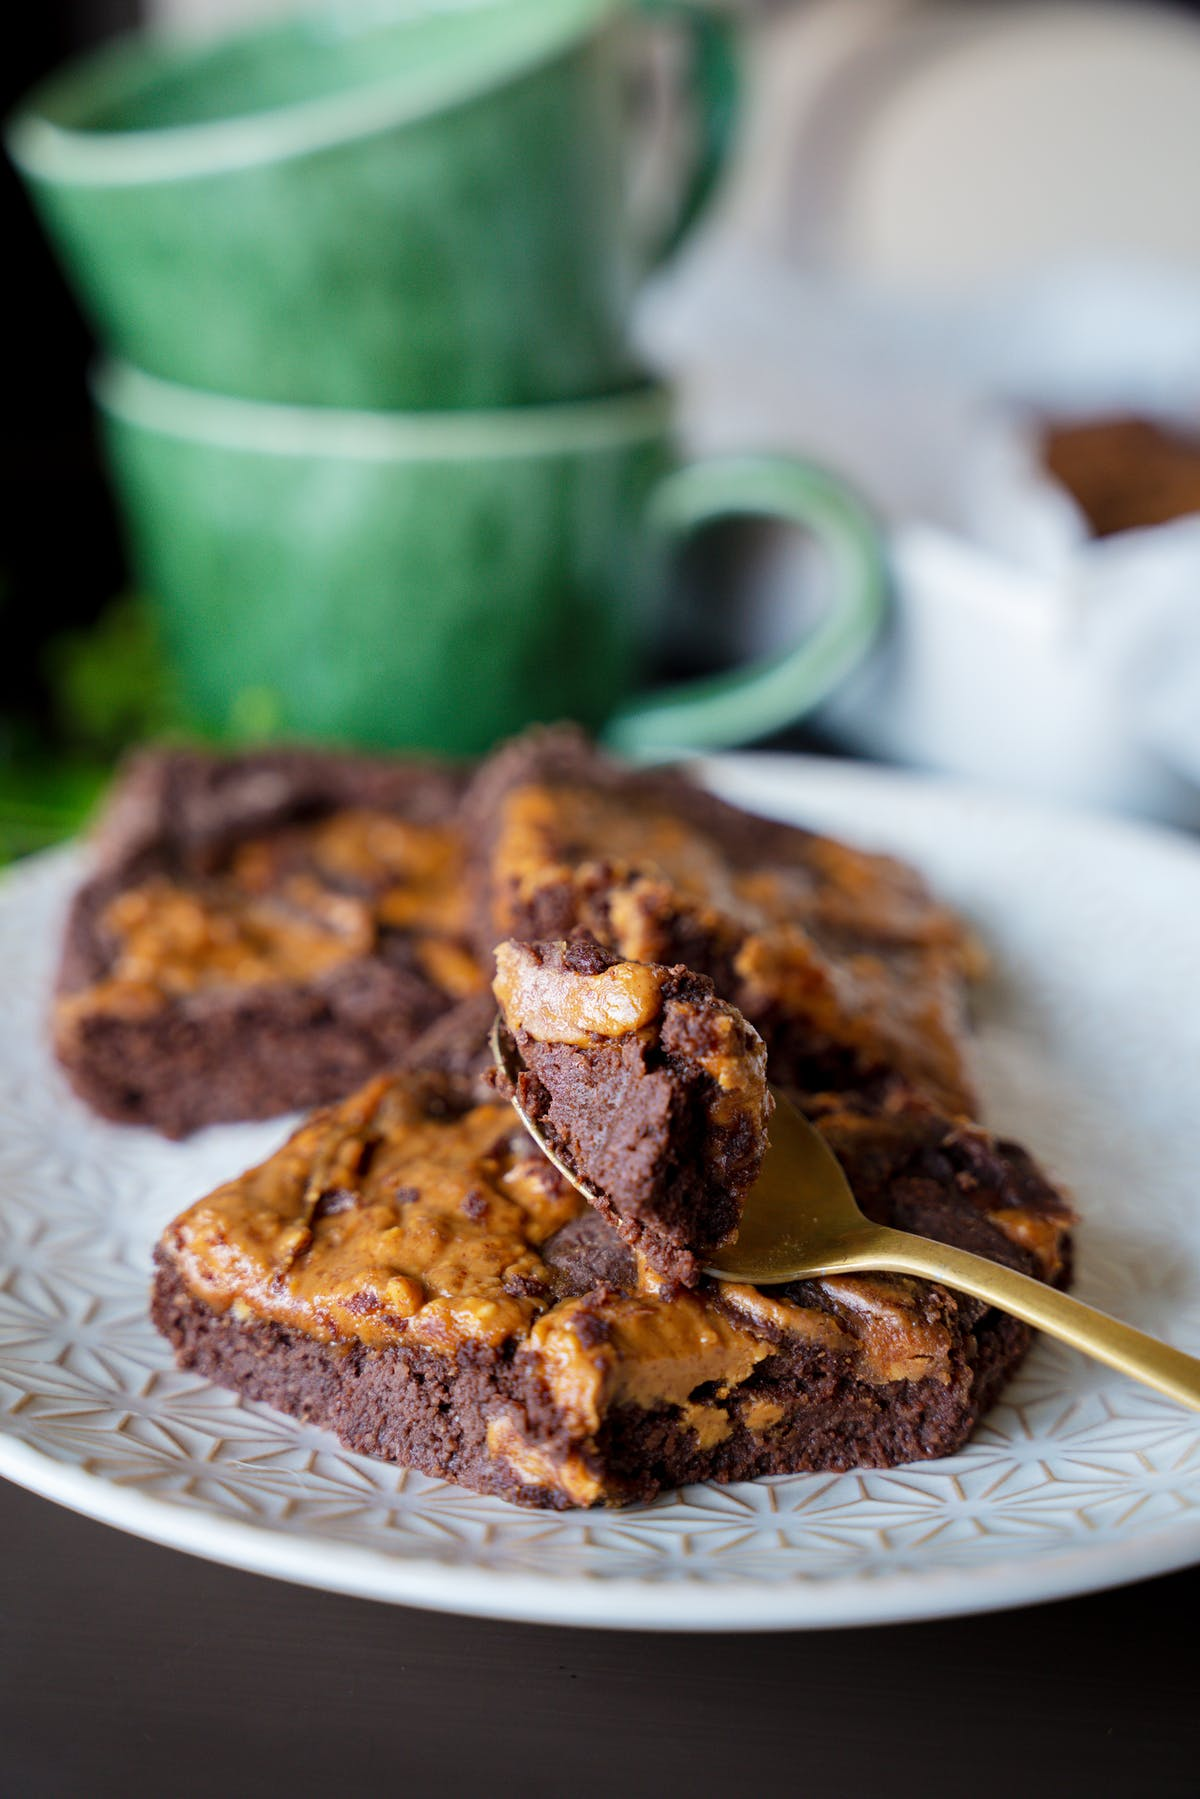 Low-carb high protein peanut butter brownies